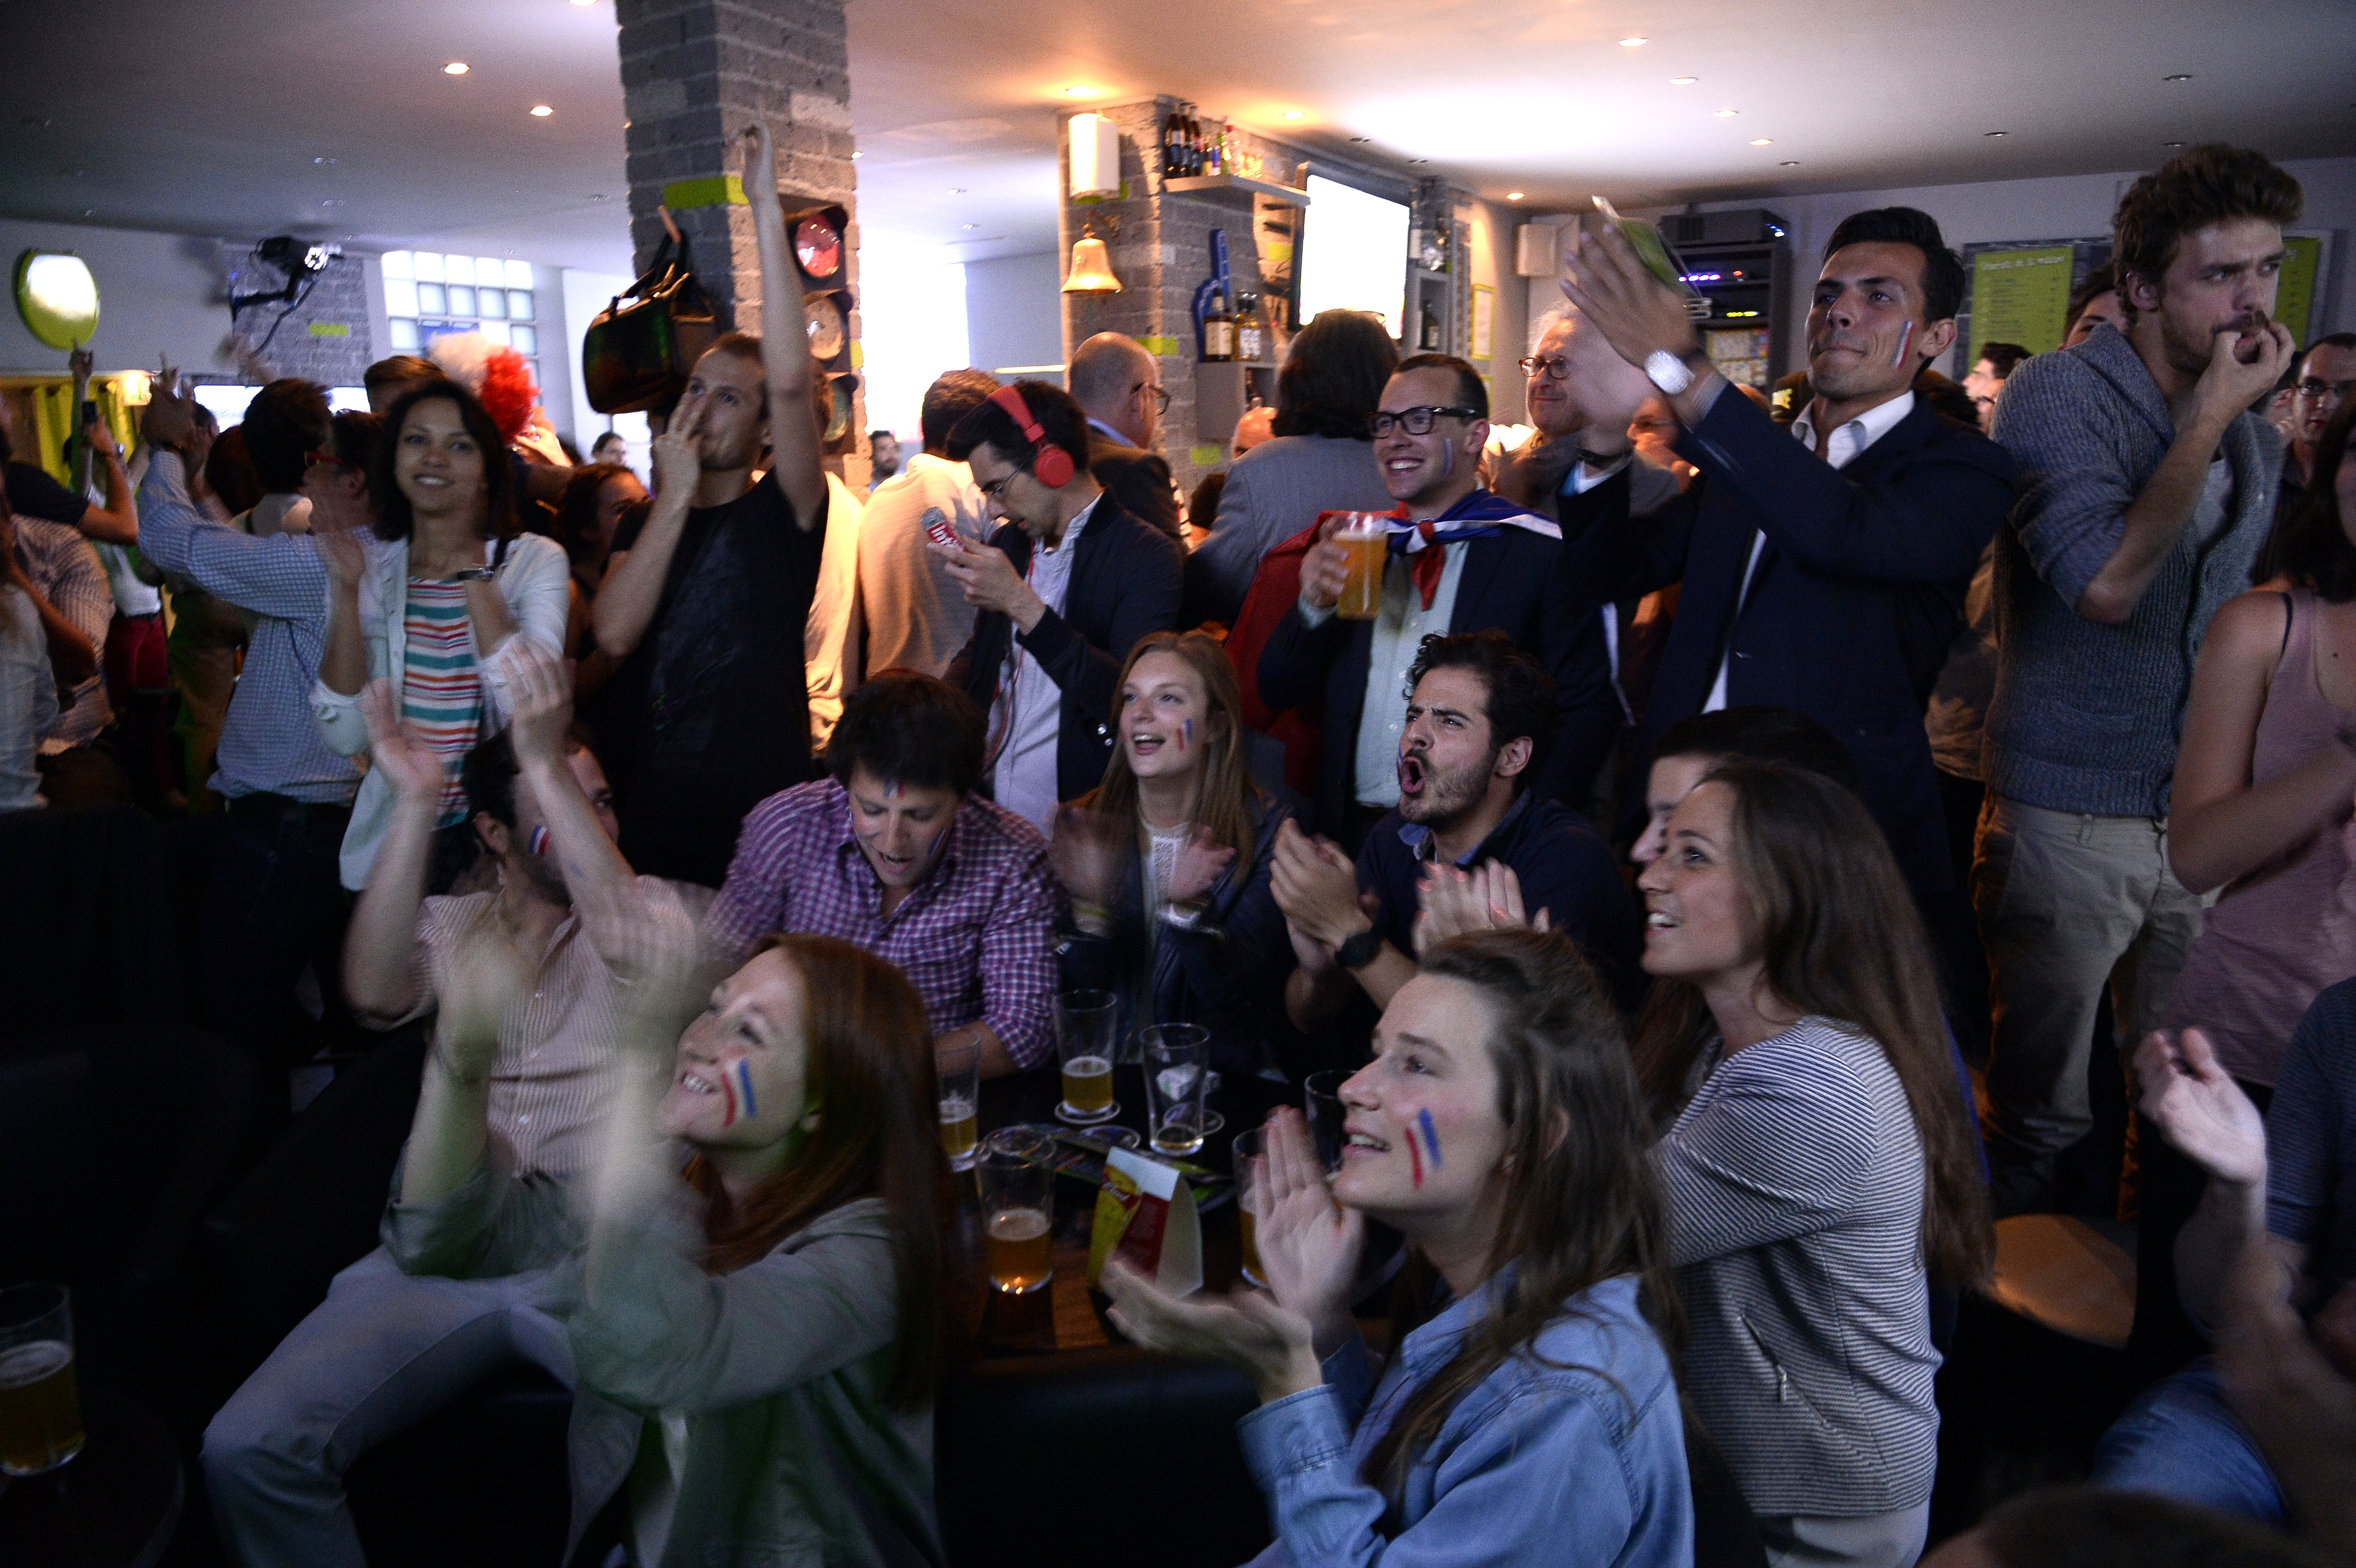 Football fans react during the FIFA World Cup 2014 football match between France and Ecuador on June 25, 2014 at a bar in Paris.